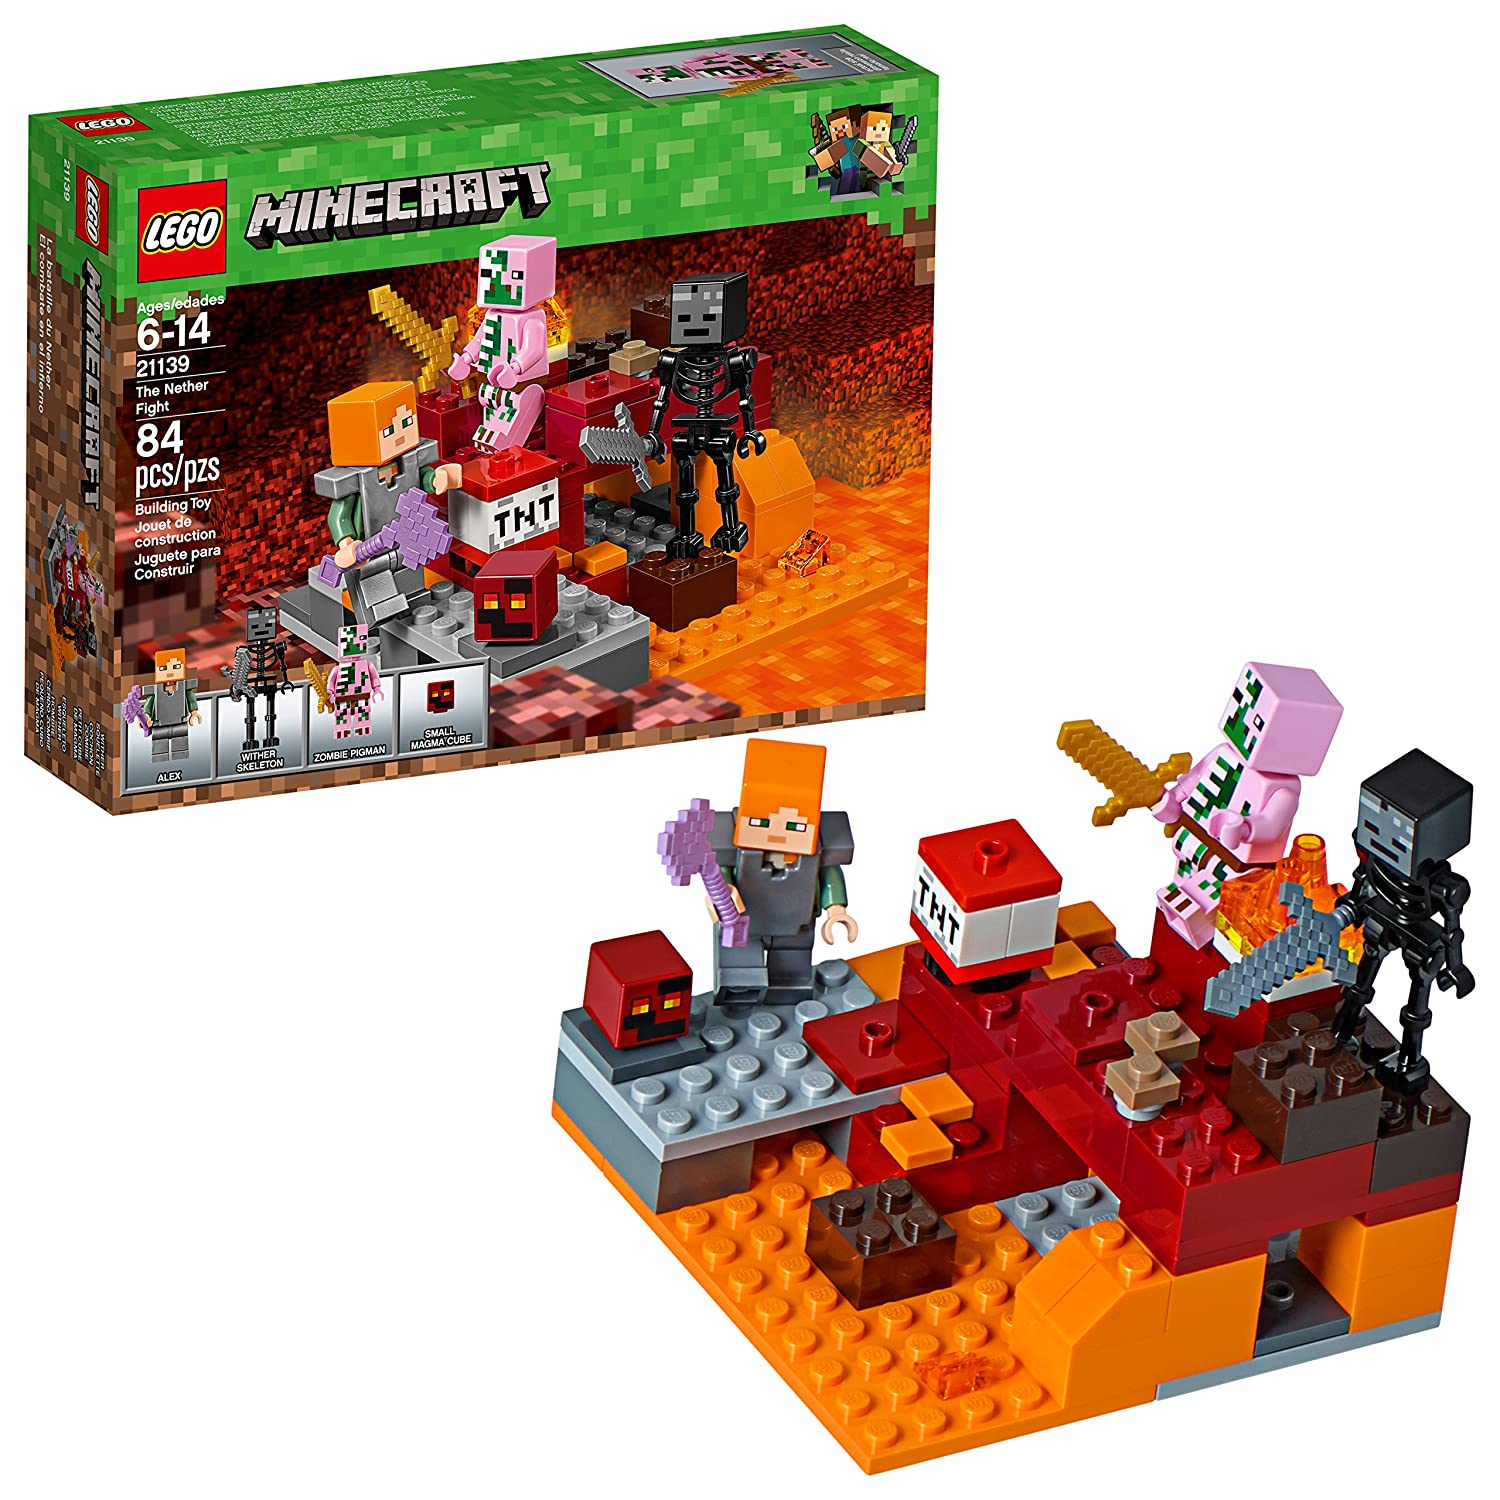 Lego Minecraft The Nether Fight 21139 Building Kit (84 Piece) 6212347